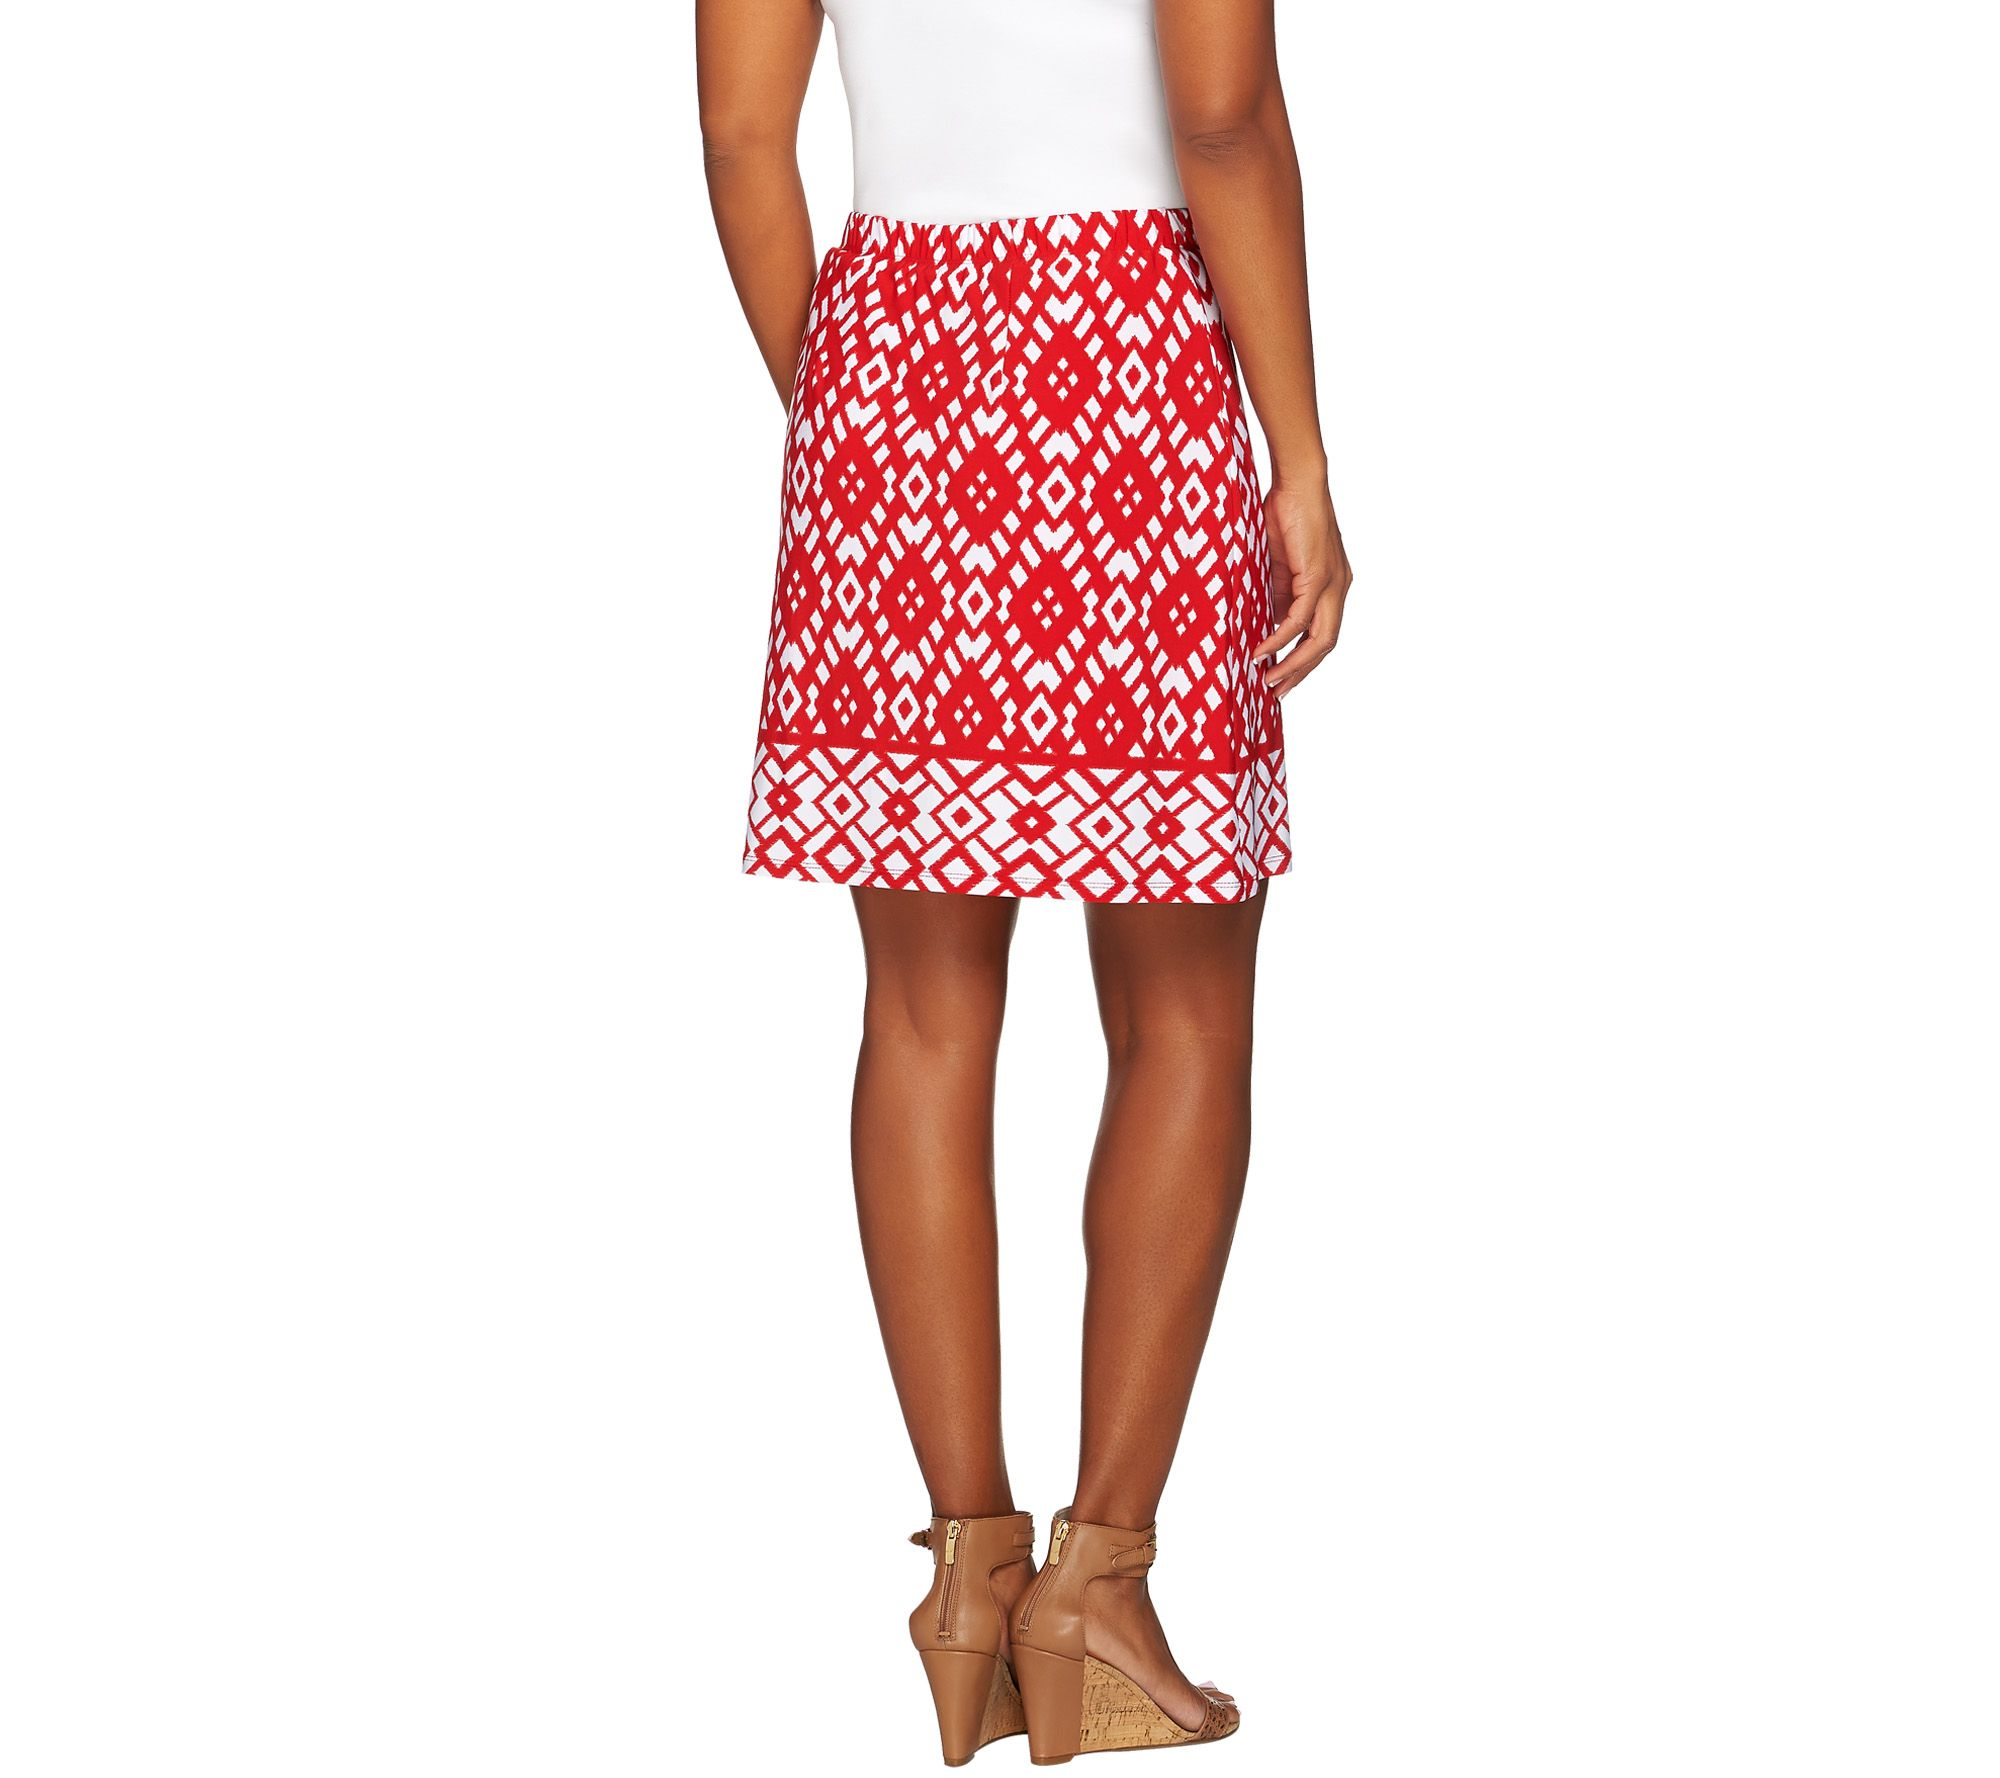 cf2d0e6fc4 Susan Graver Choice of Solid or Print Liquid Knit Pull-On Skort - Page 1 —  QVC.com